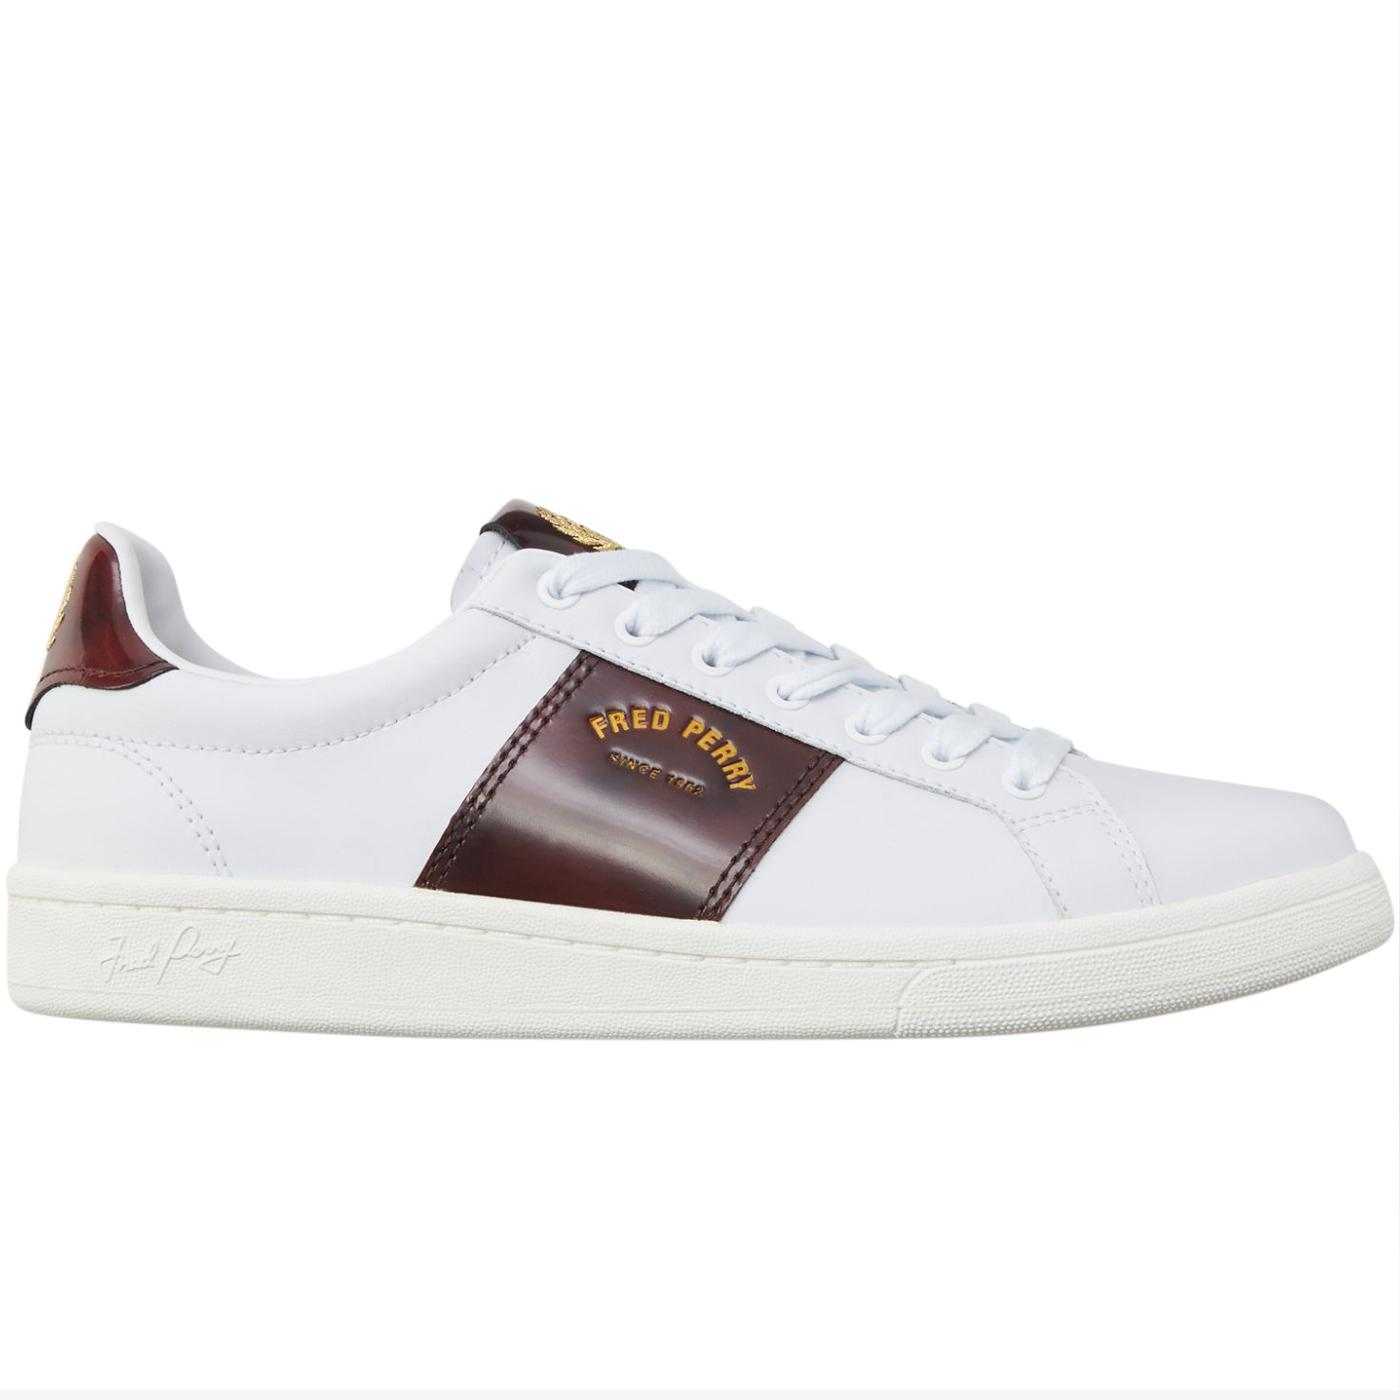 FRED PERRY B721 Arch Branded Retro Tennis Trainers